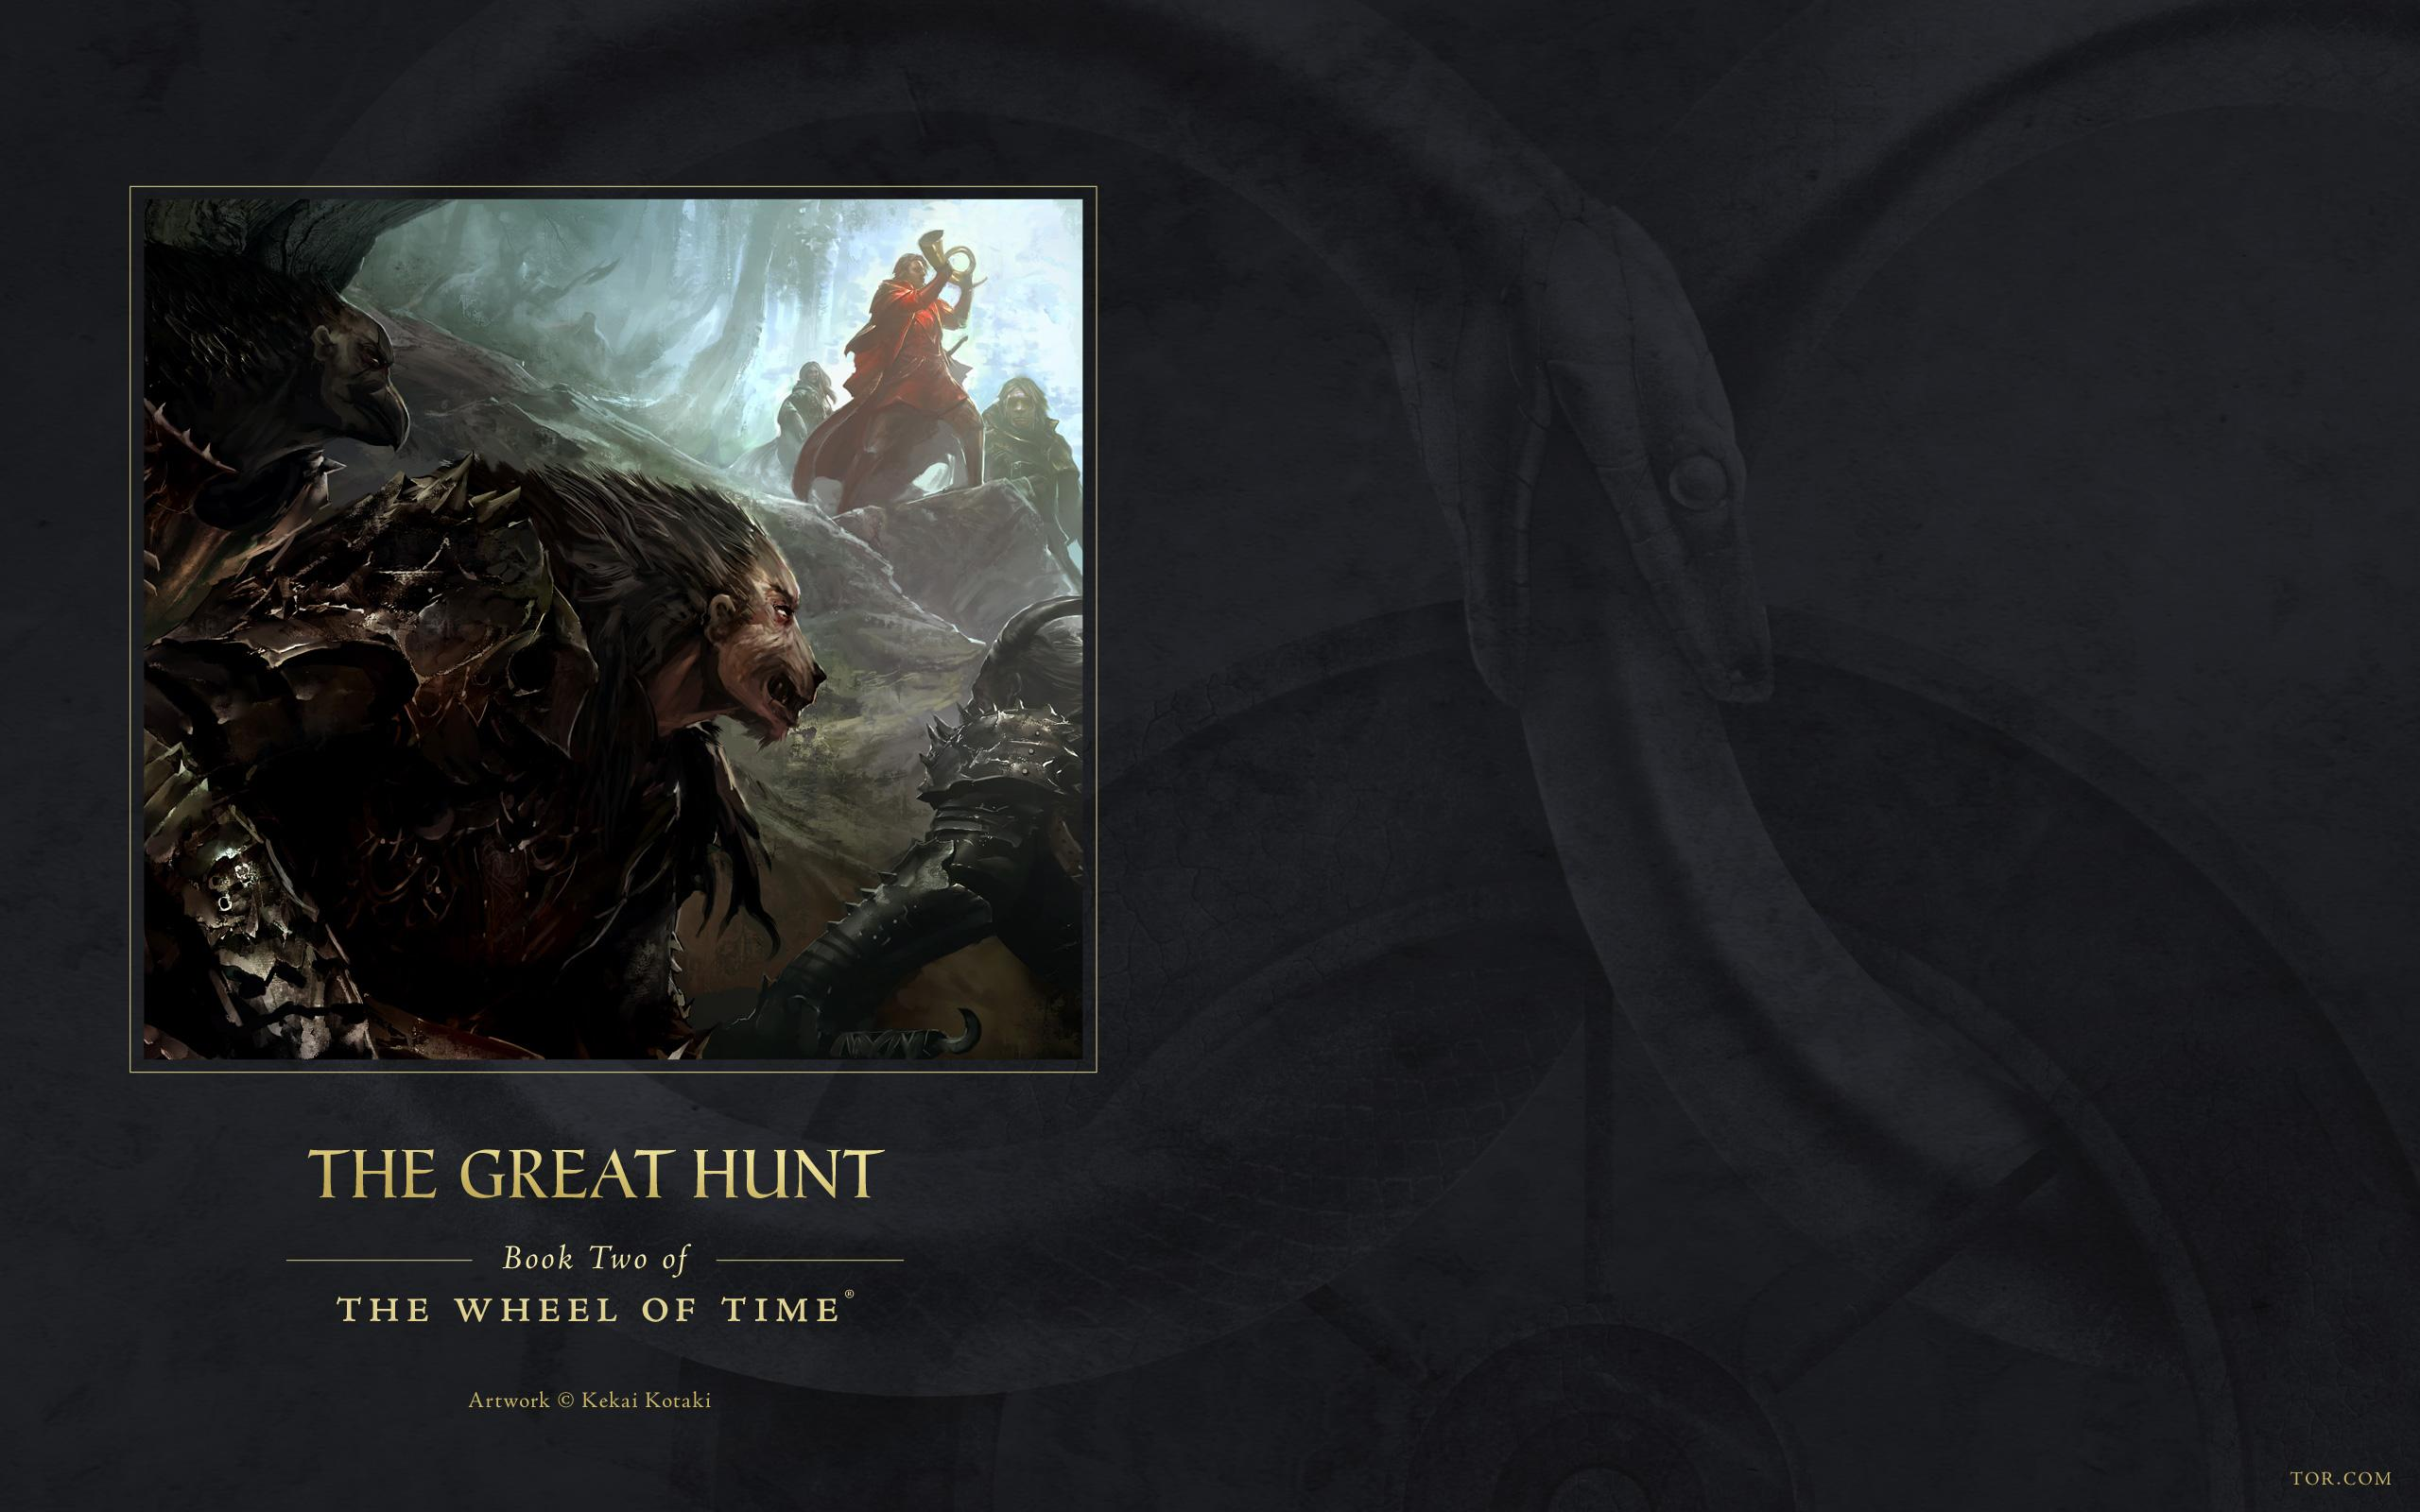 Download Free Wallpapers from The Great Hunt Ebook